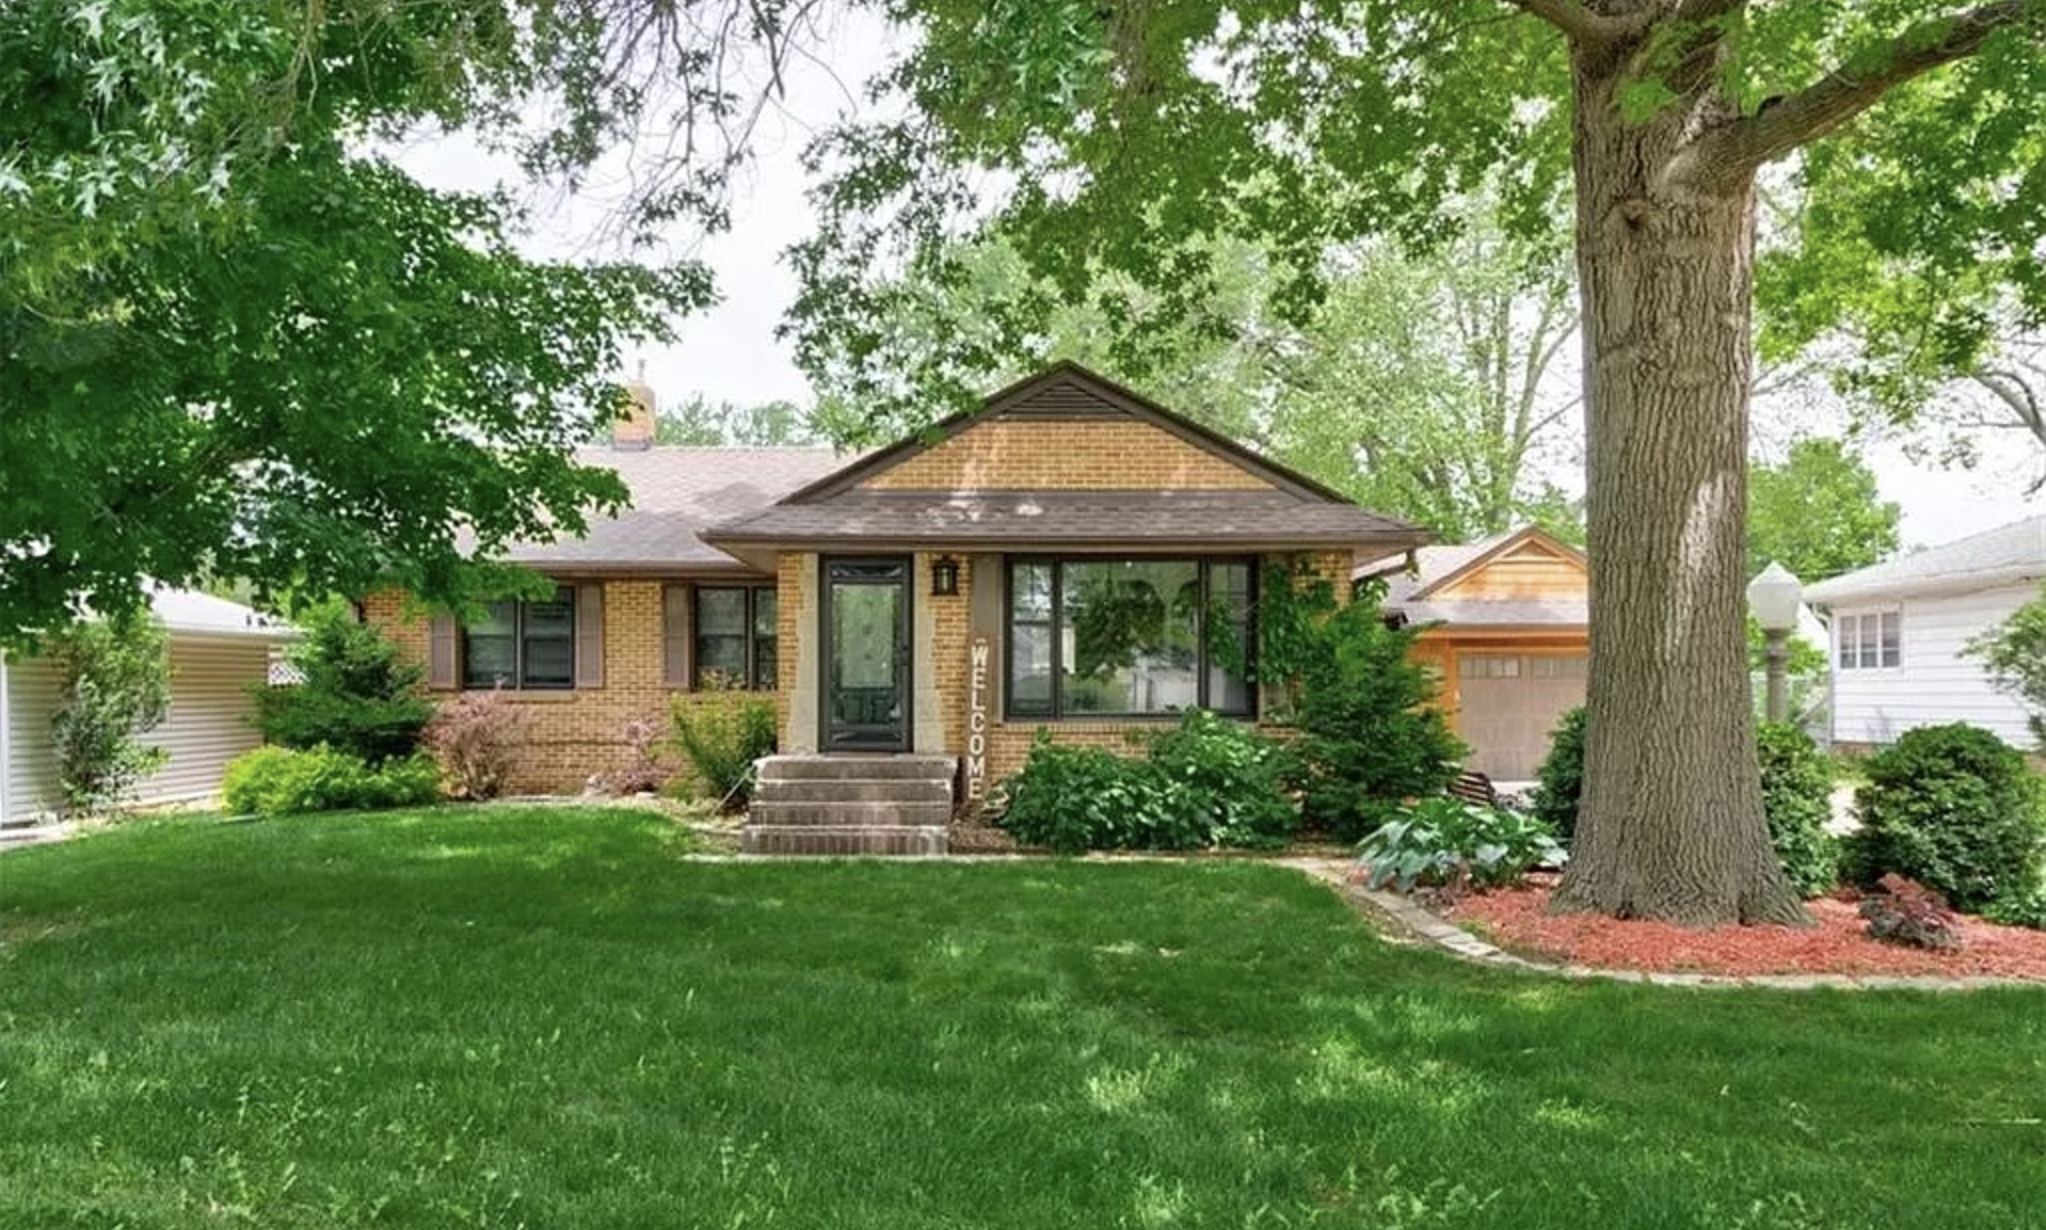 The exterior of a home for sale in Iowa.